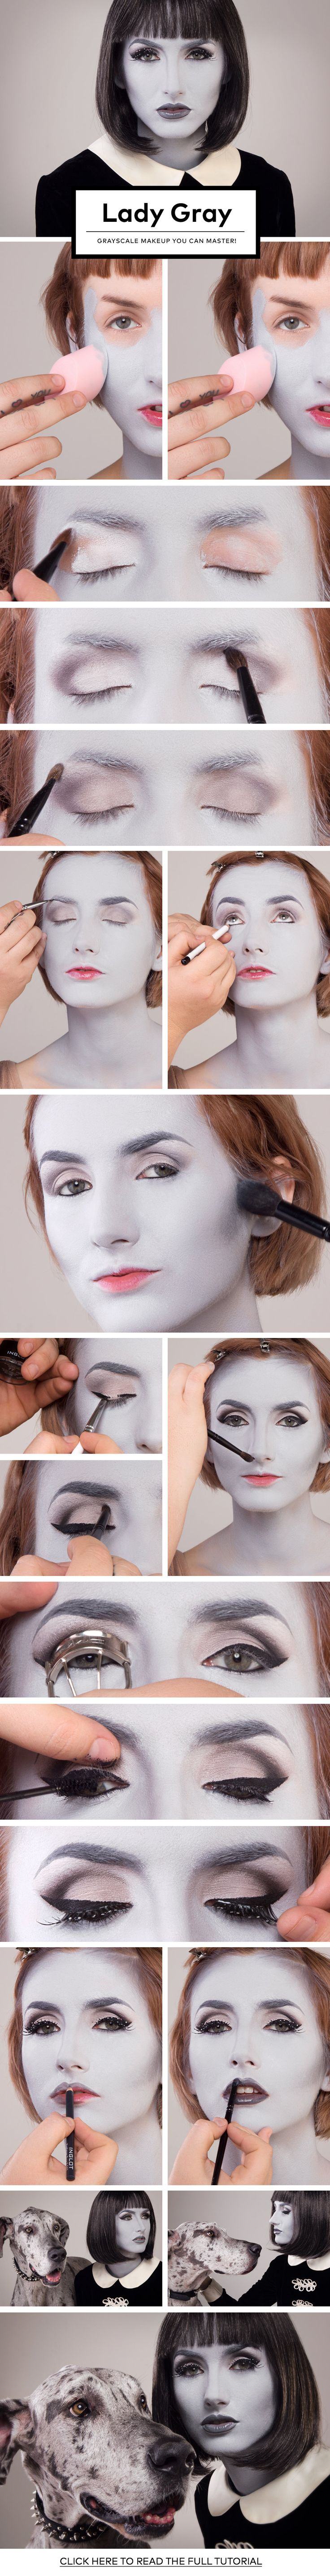 Lady Gray: Grayscale Makeup You Can Master! | Beautylish